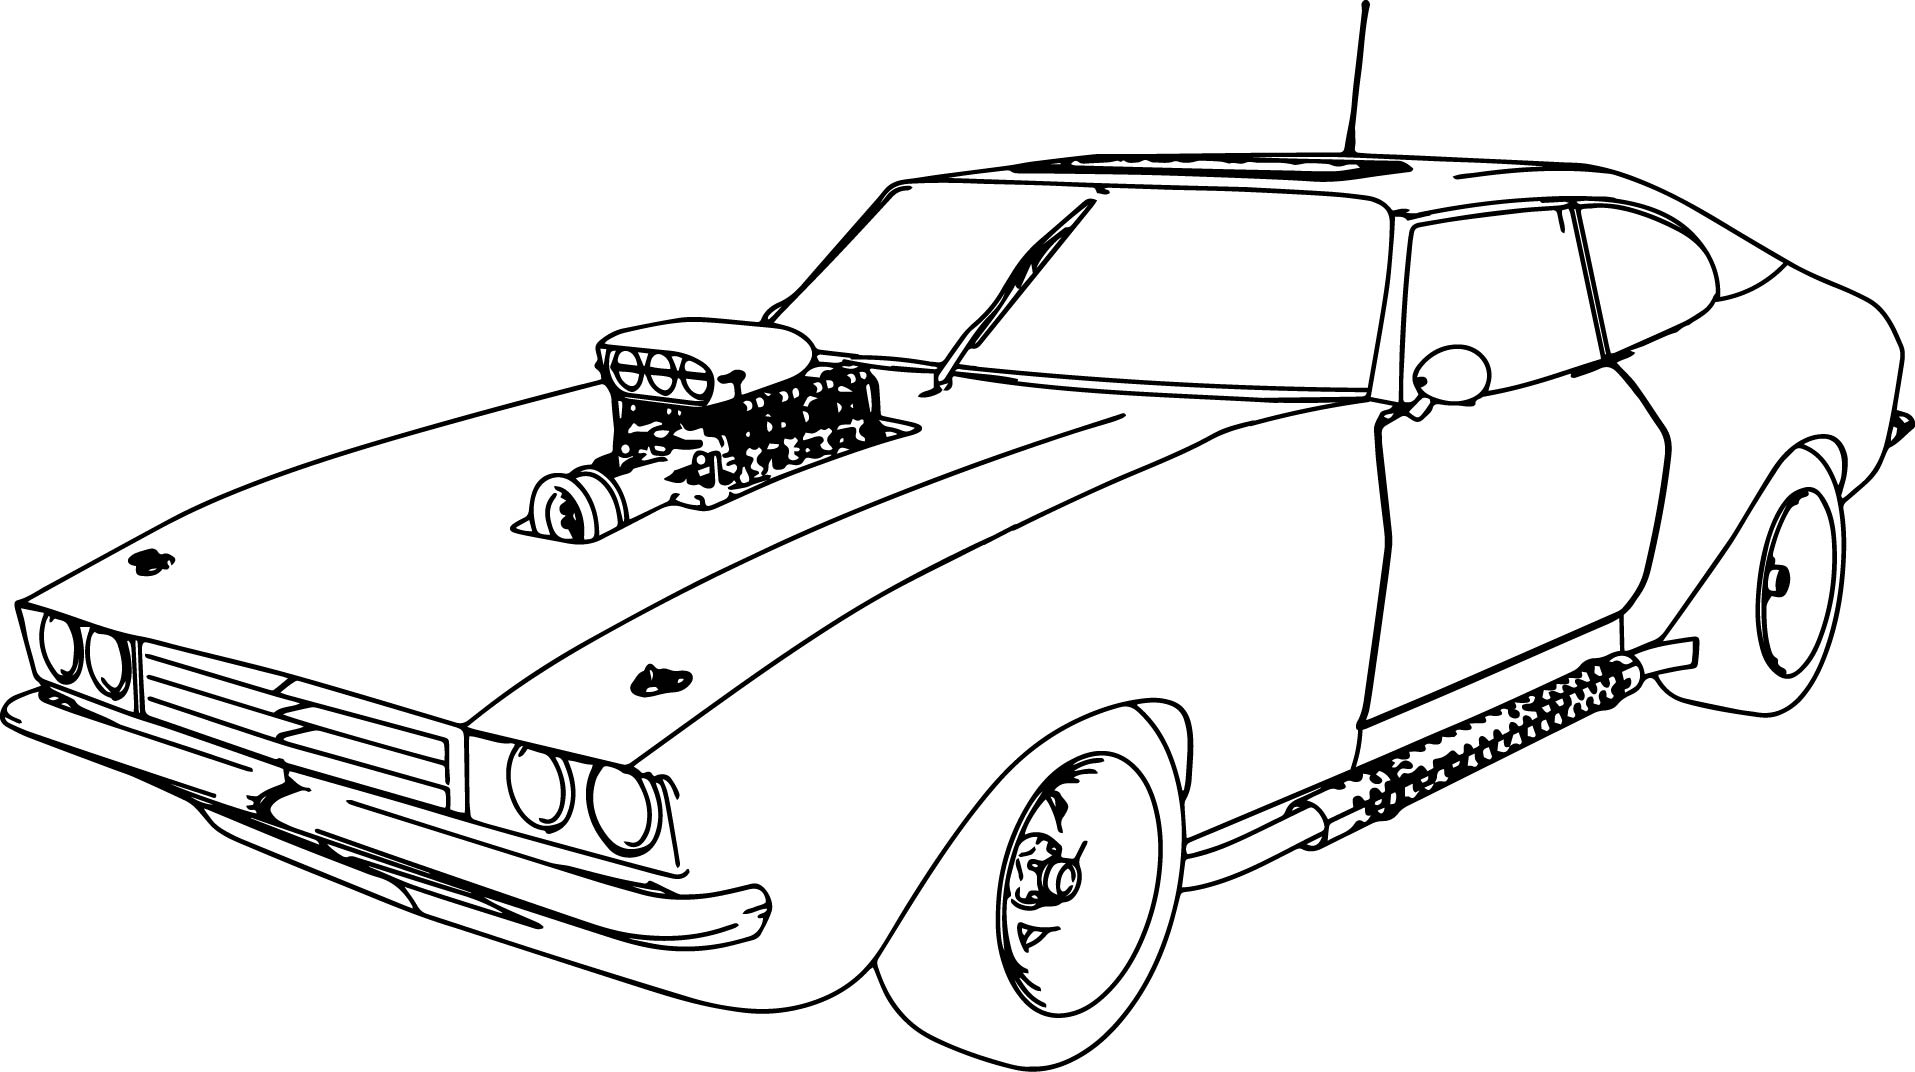 Coloring Pages Of ford Mustangs - Super Car ford Mustang Coloring Page Inspirational Mustang Download Printable